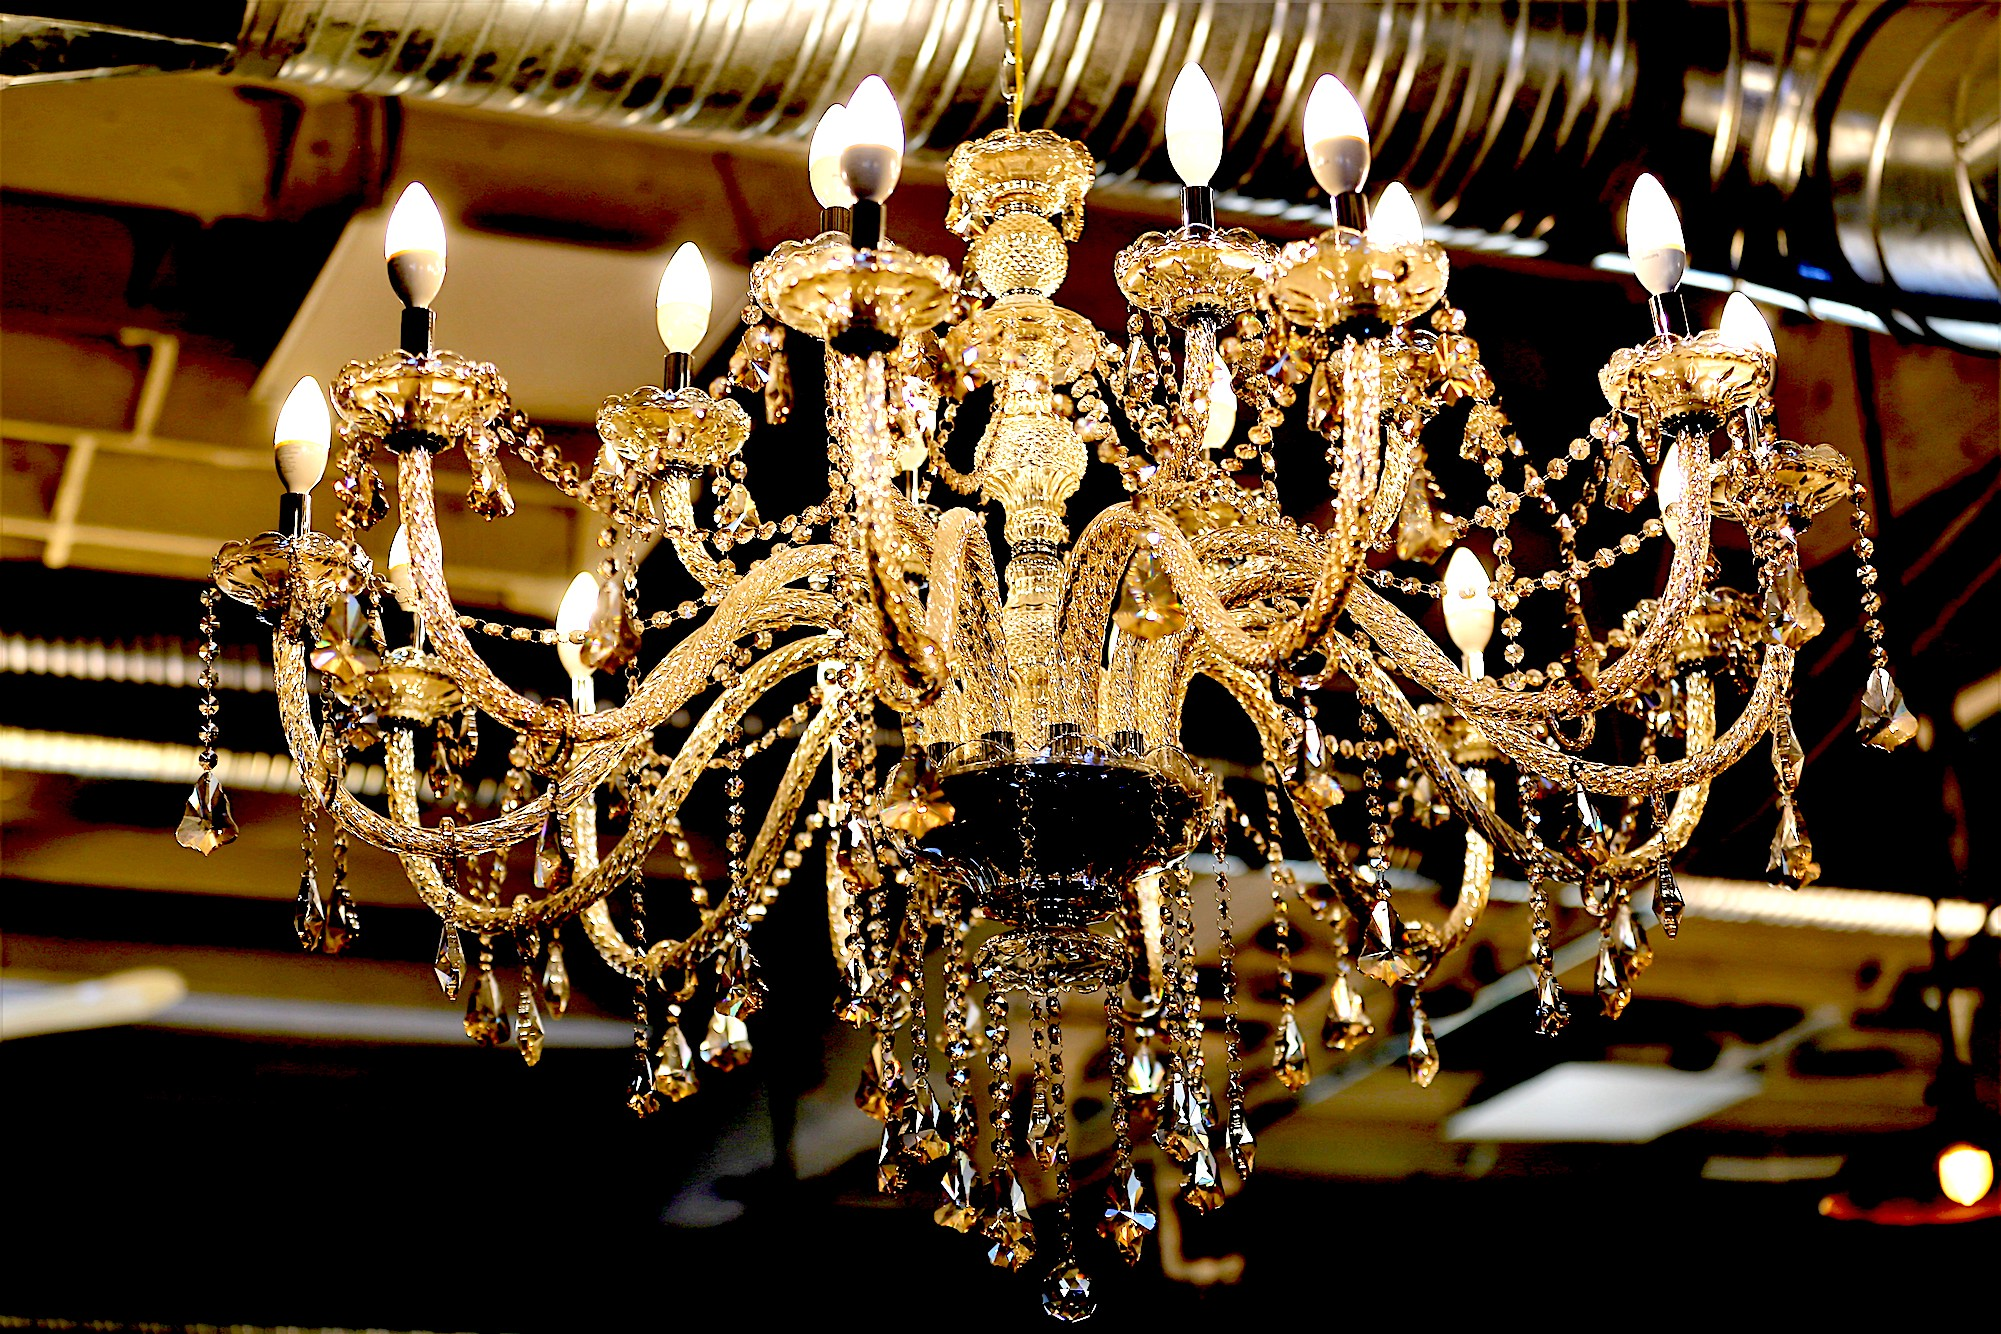 Chandelier at the Commons Calgary. Hemingway Room